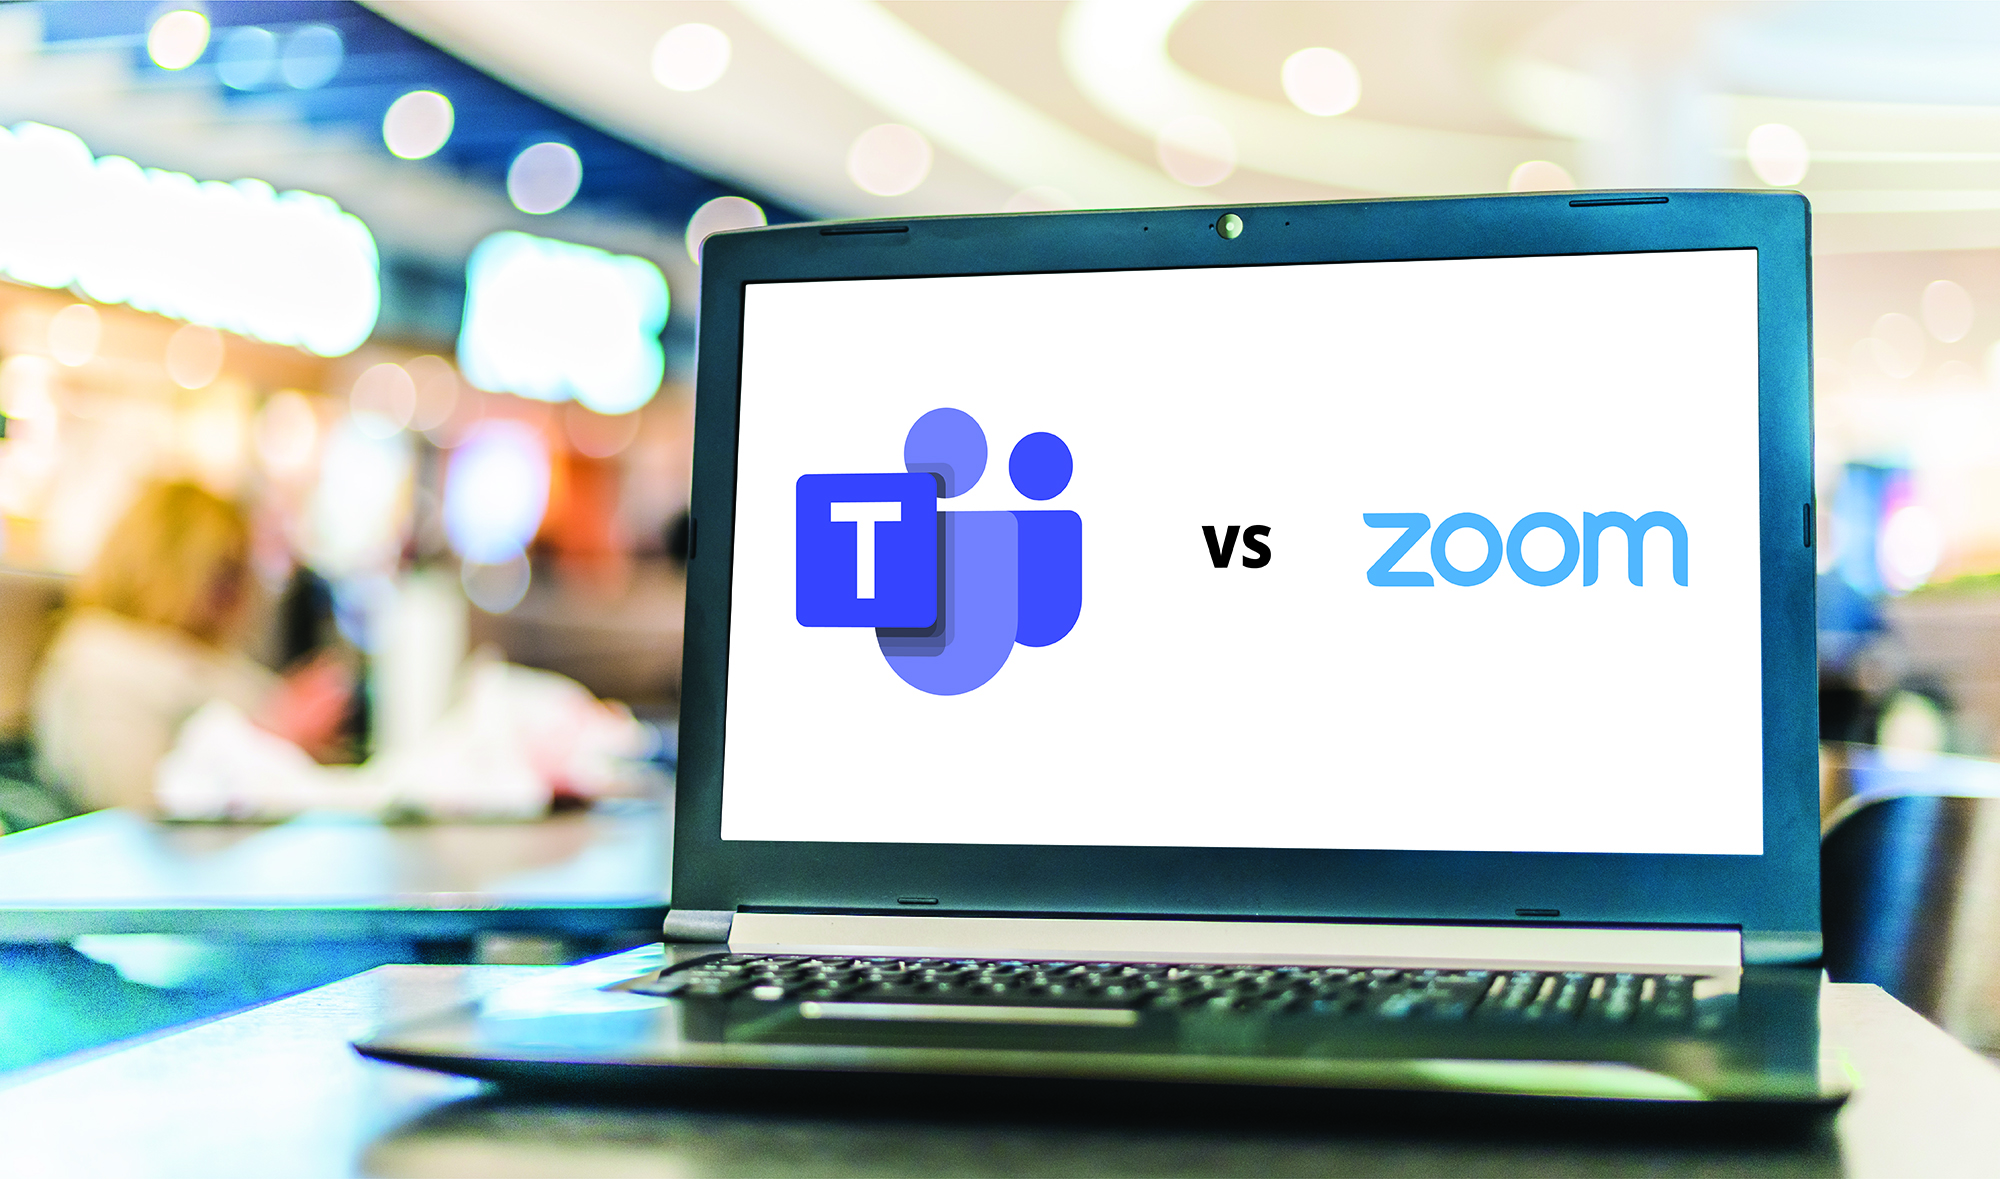 Teams-vs-zoom-laptop